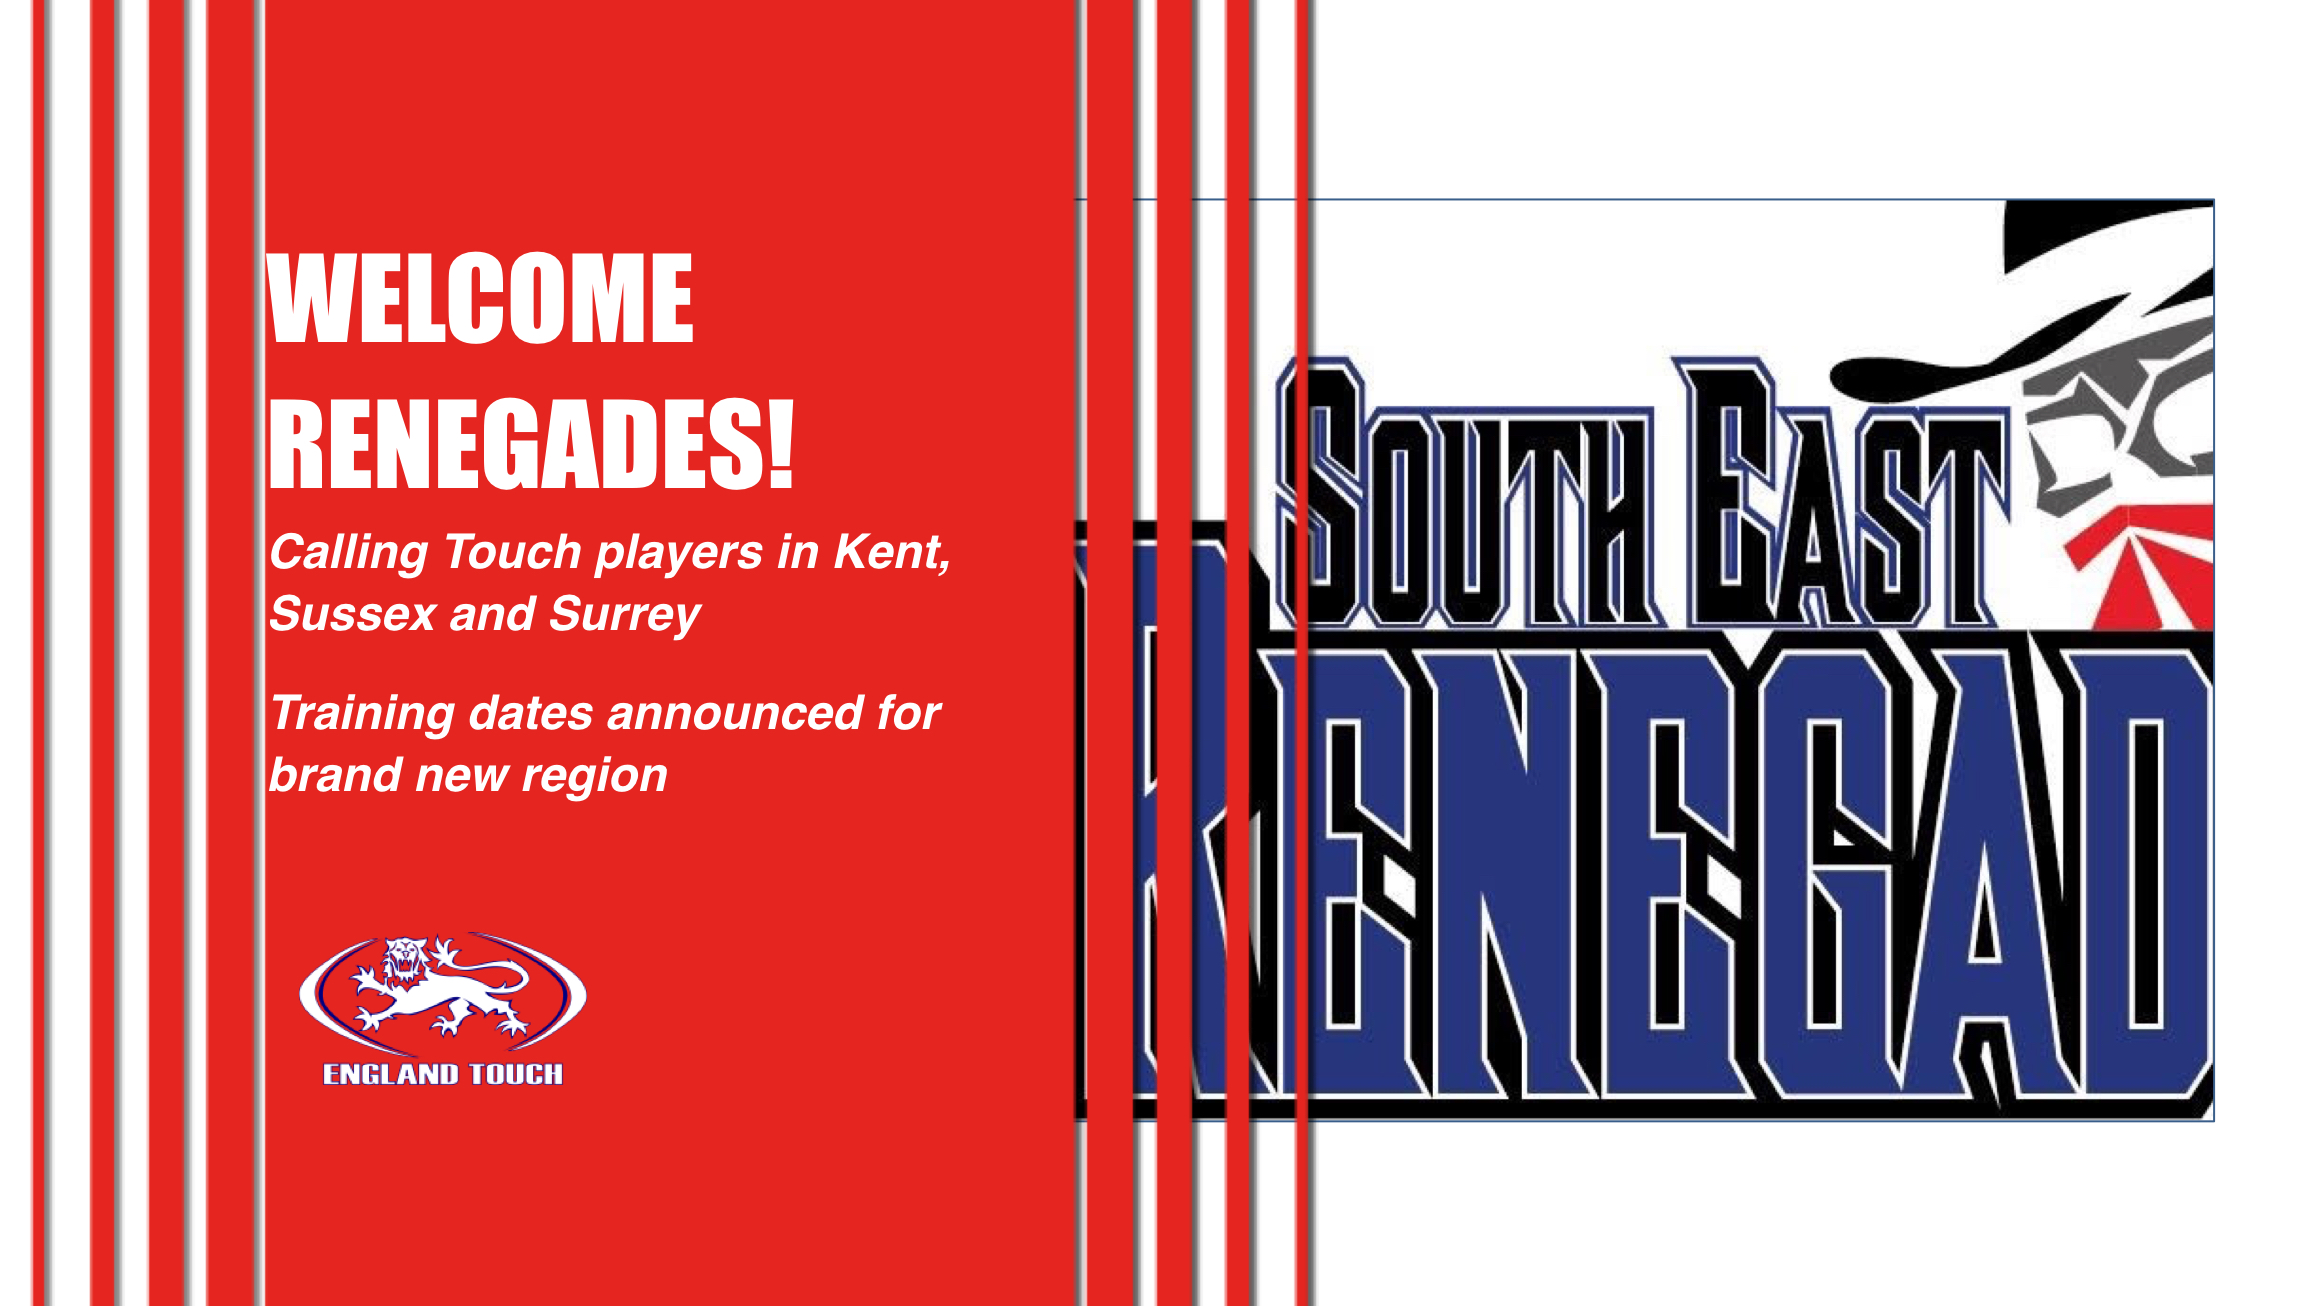 South-East Renegades - new region training sessions announced